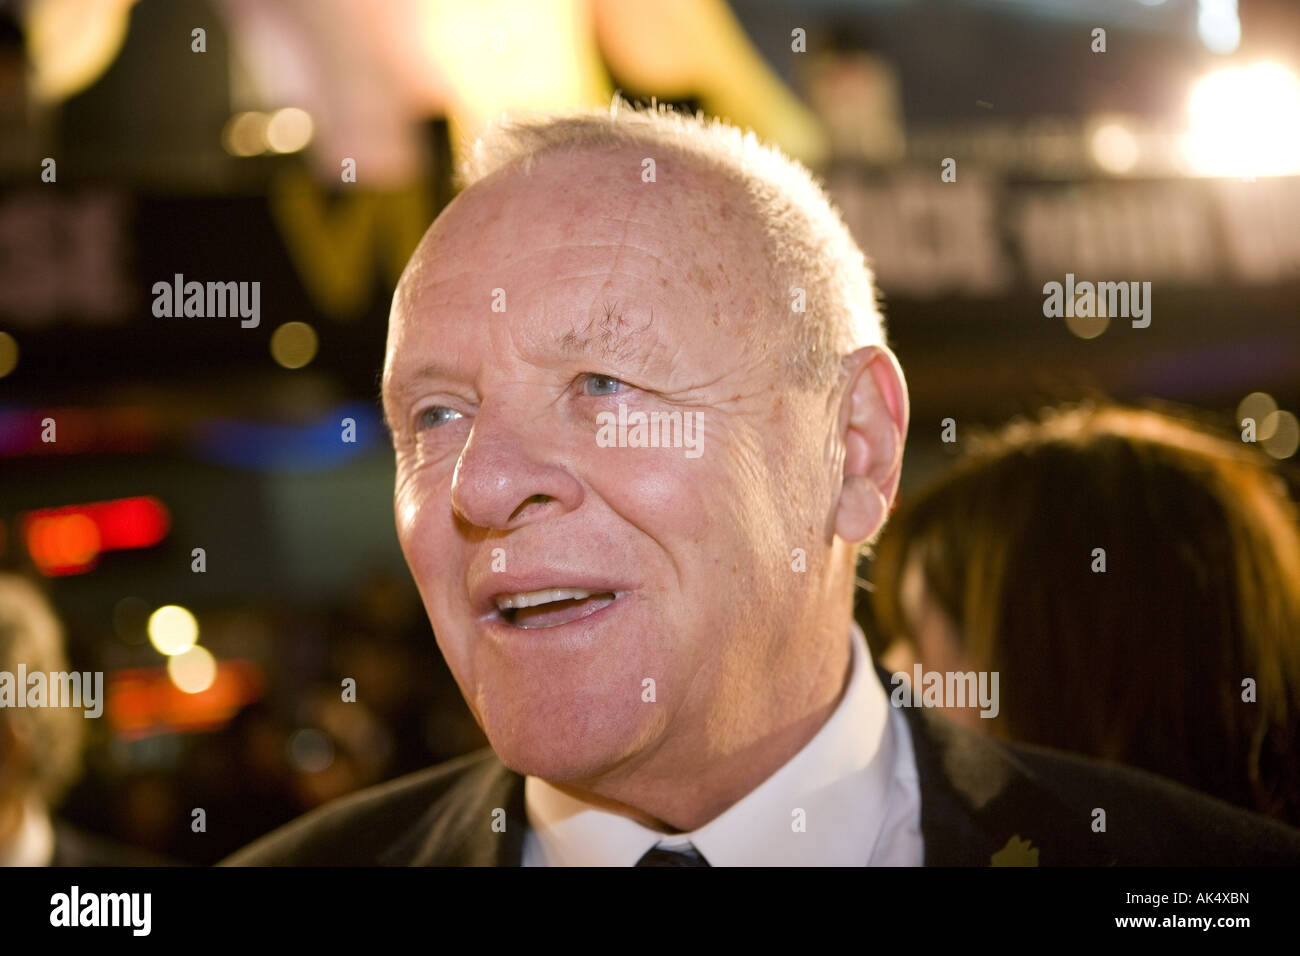 Beo Wulf  - European film premiere London leicester sqaure, starring Sir anthony hopkins - Stock Image